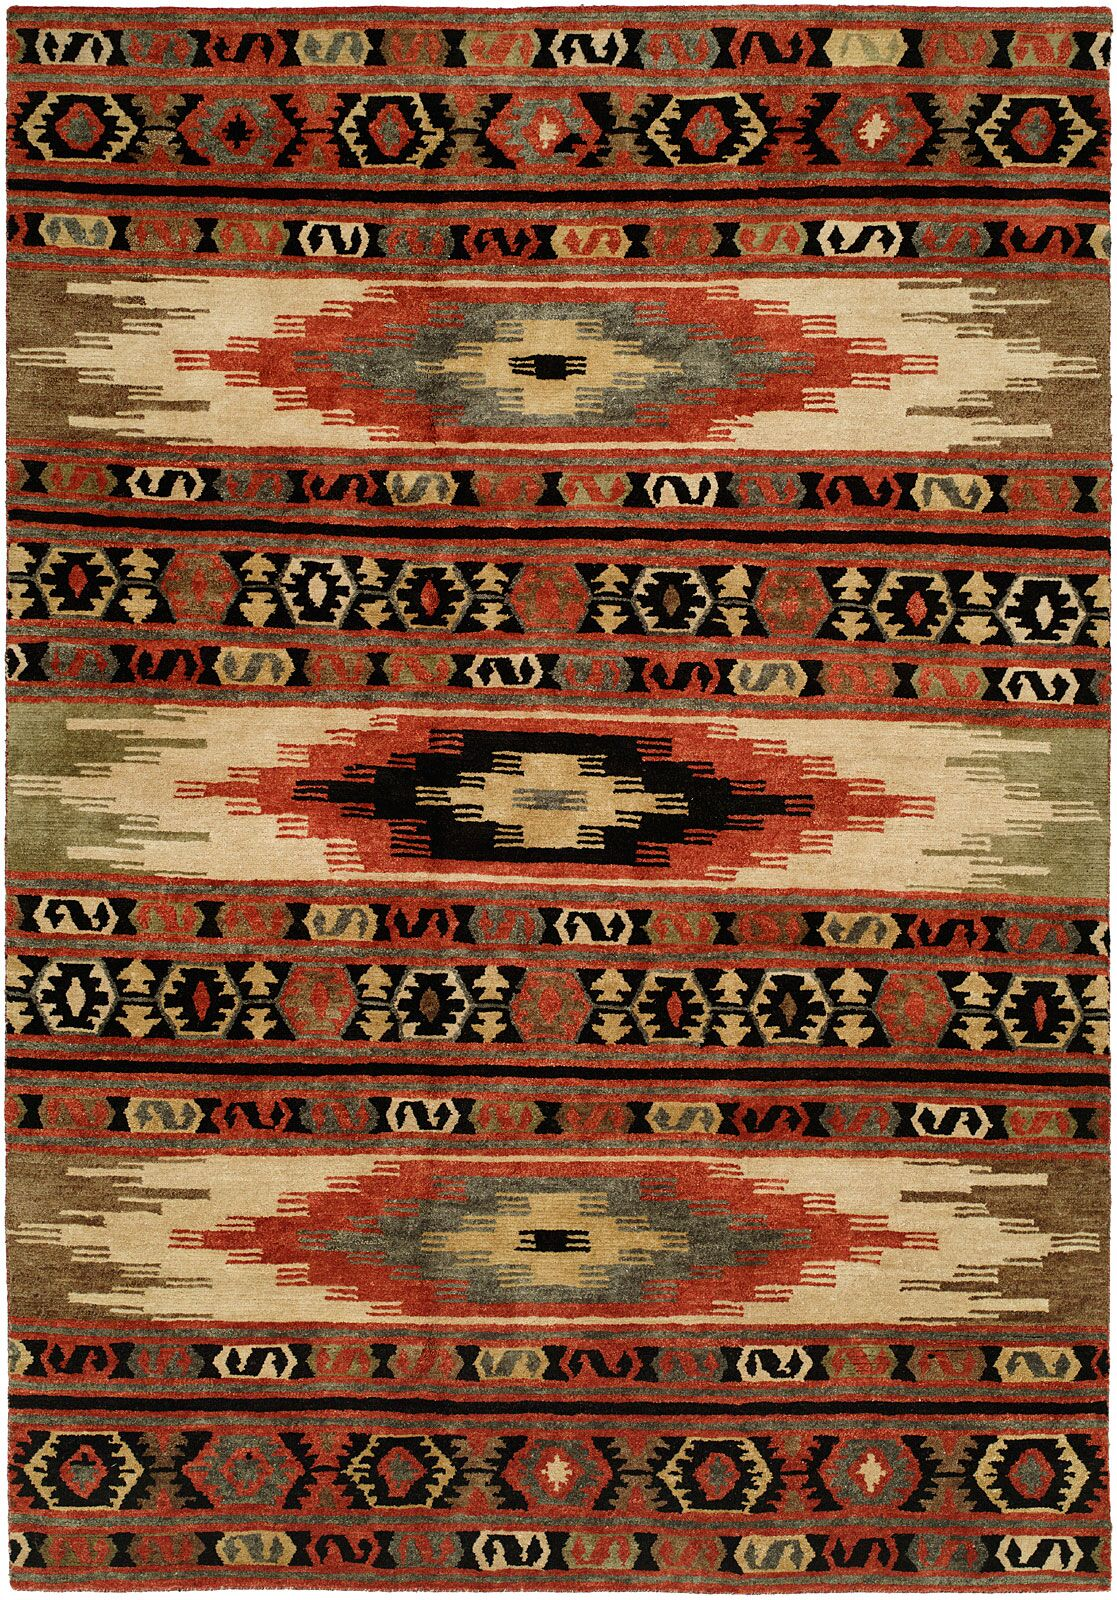 Savanna Hand-Knotted Wool Red Area Rug Rug Size: Runner 2'6